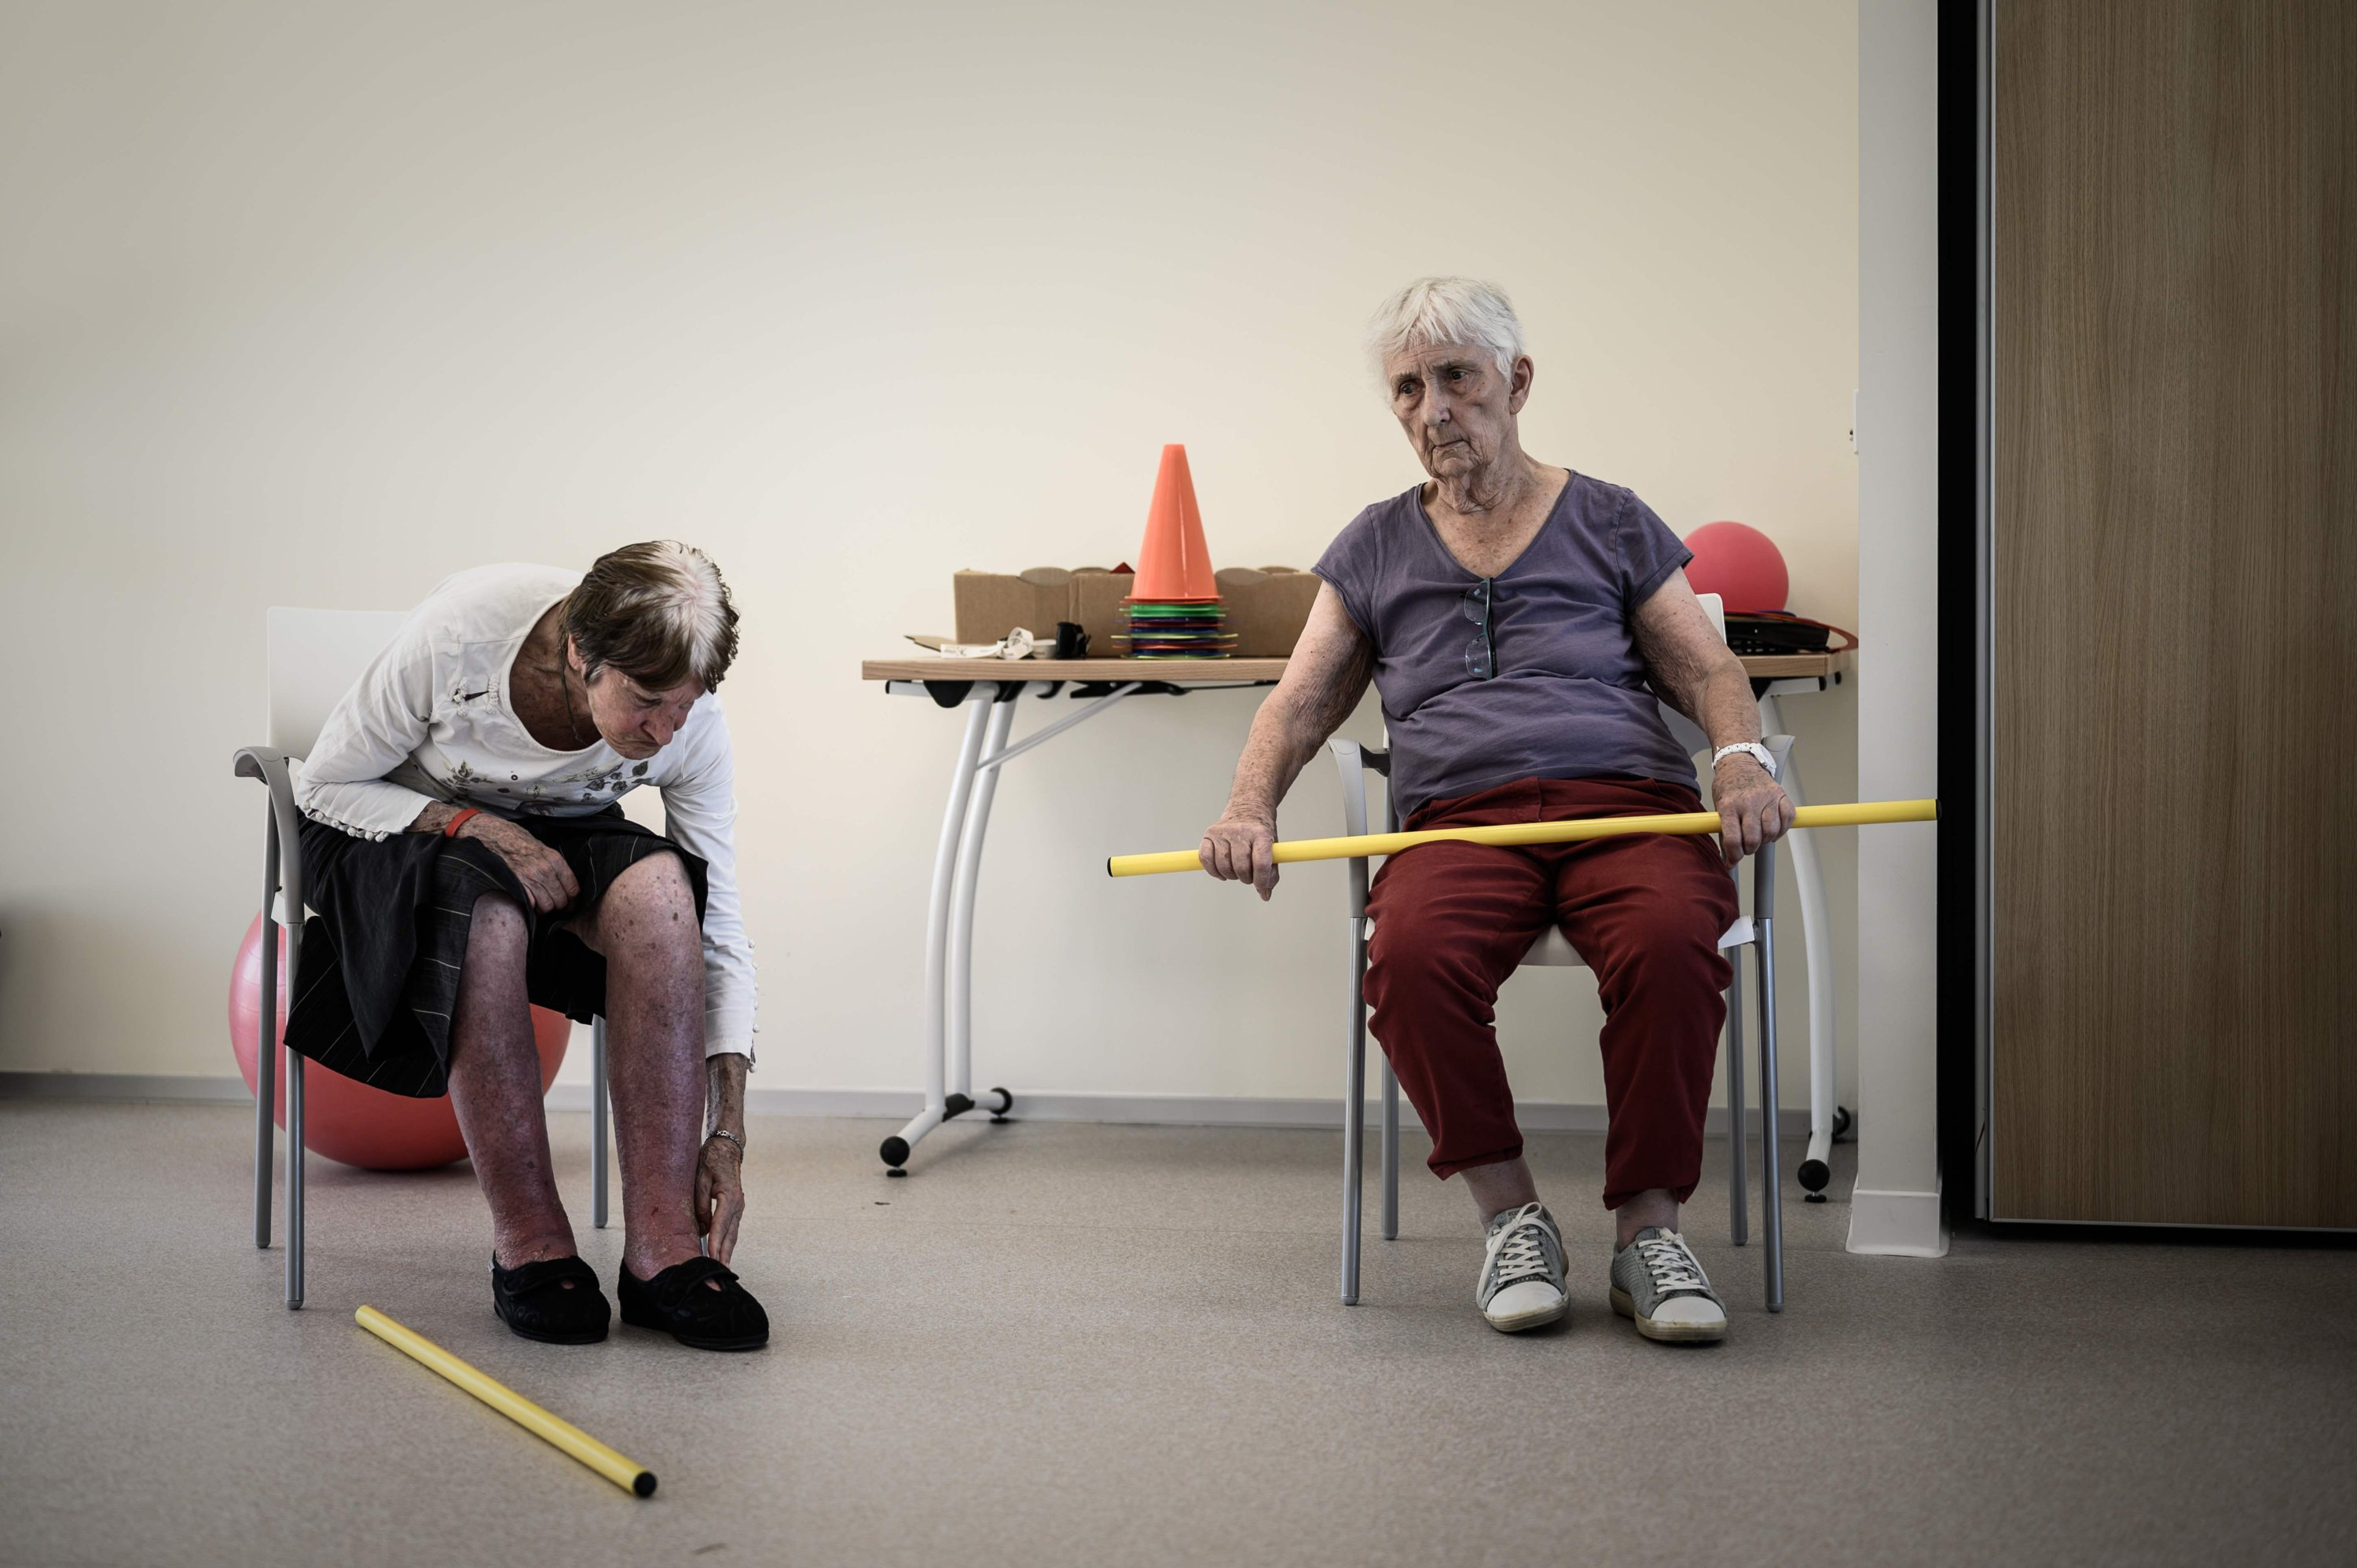 Alzheimer's patients engage in physical activity in the village Landais Alzheimer site for Alzheimer's patients in Dax, southwestern France, Sept. 9, 2020. (AFP Photo)